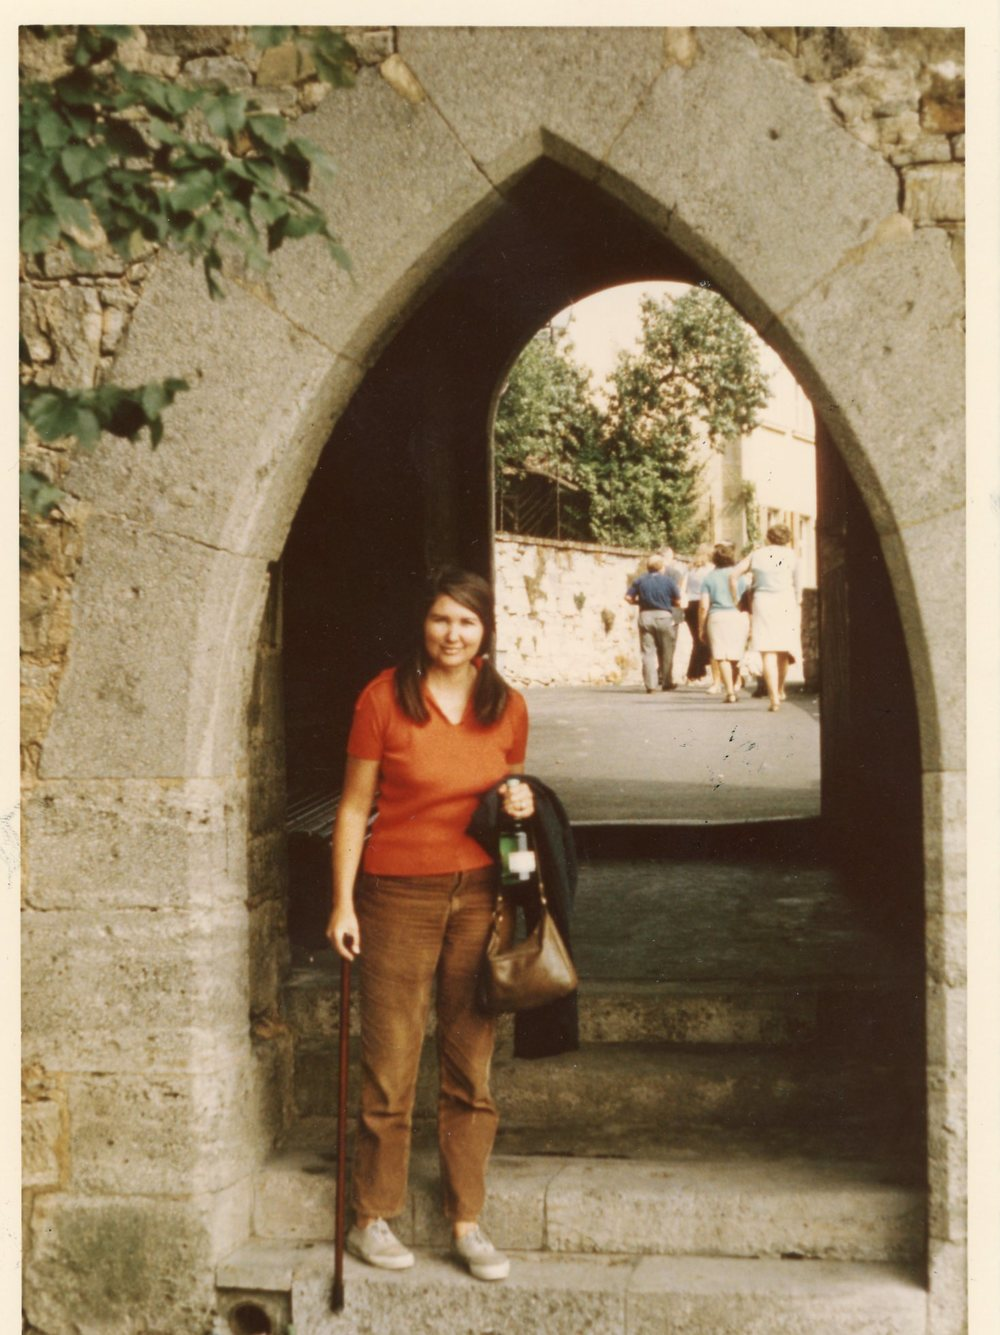 Barb visit to Germany 1971.jpg